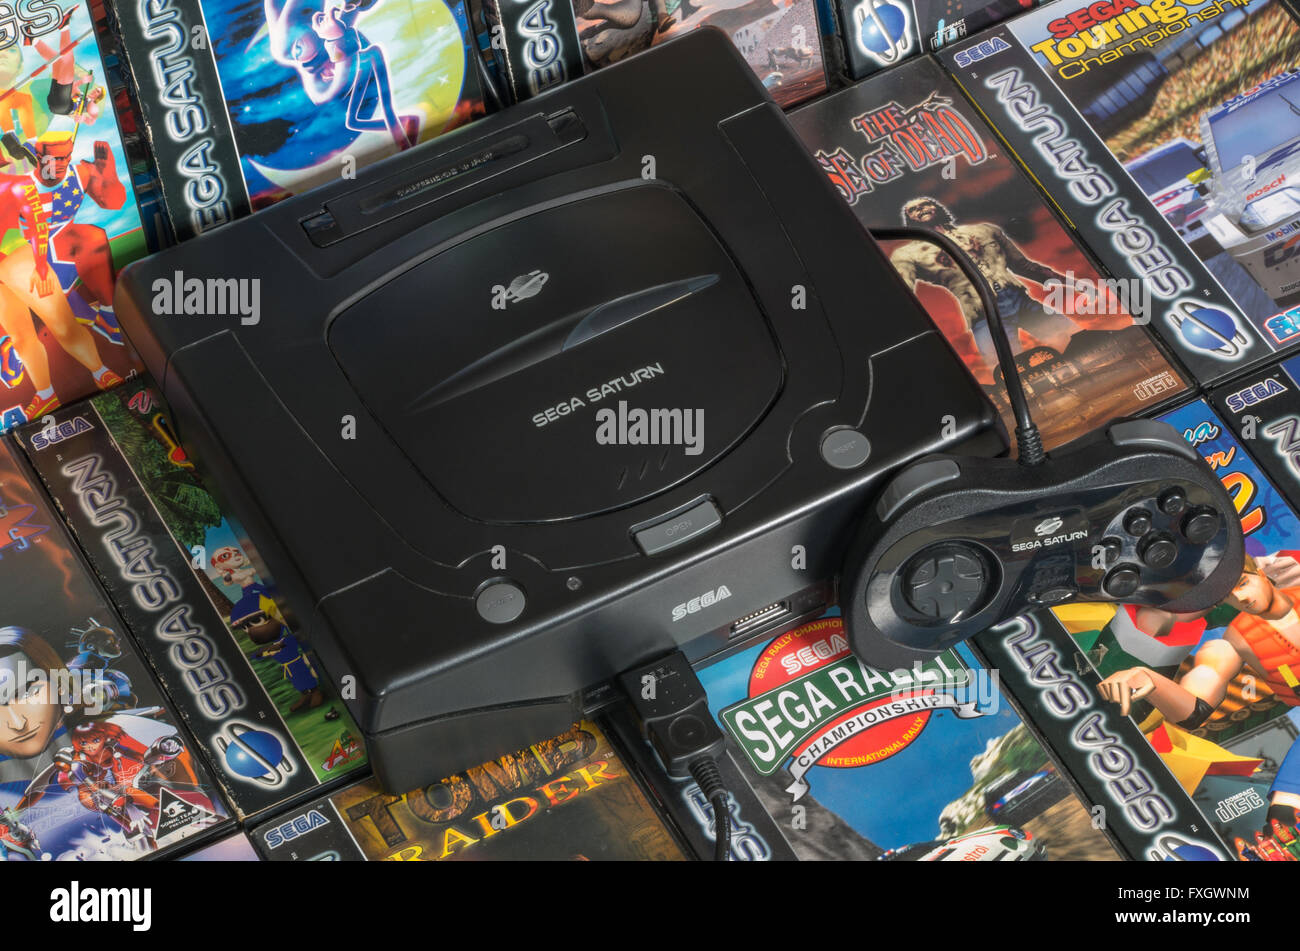 A PAL Sega Saturn console with a standard controller on a bed of its best games. - Stock Image